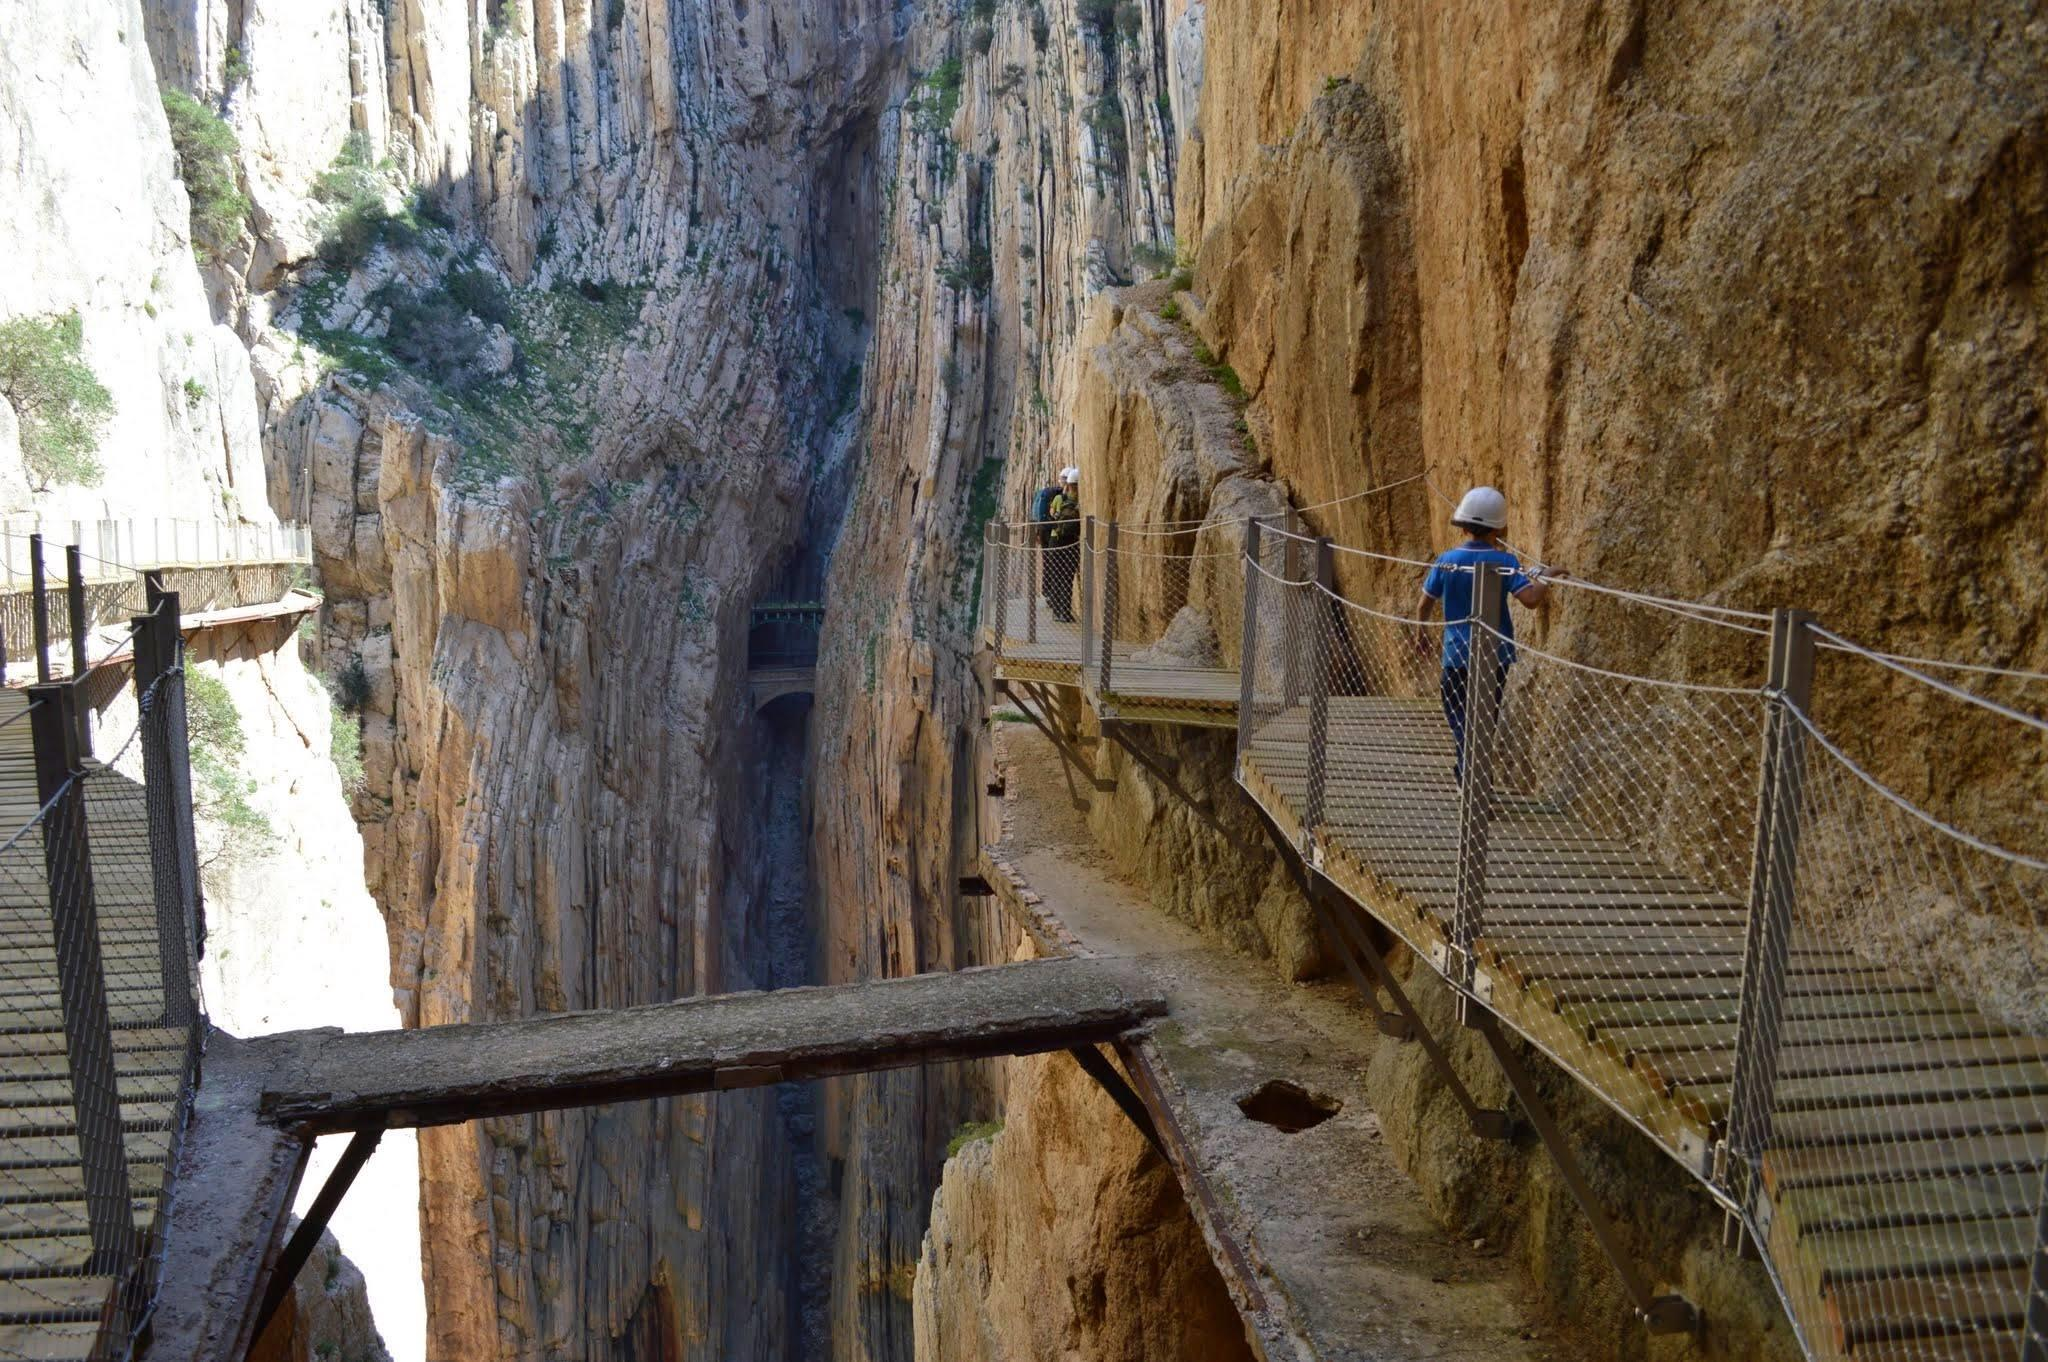 Visiting the Caminito del Rey, Malaga